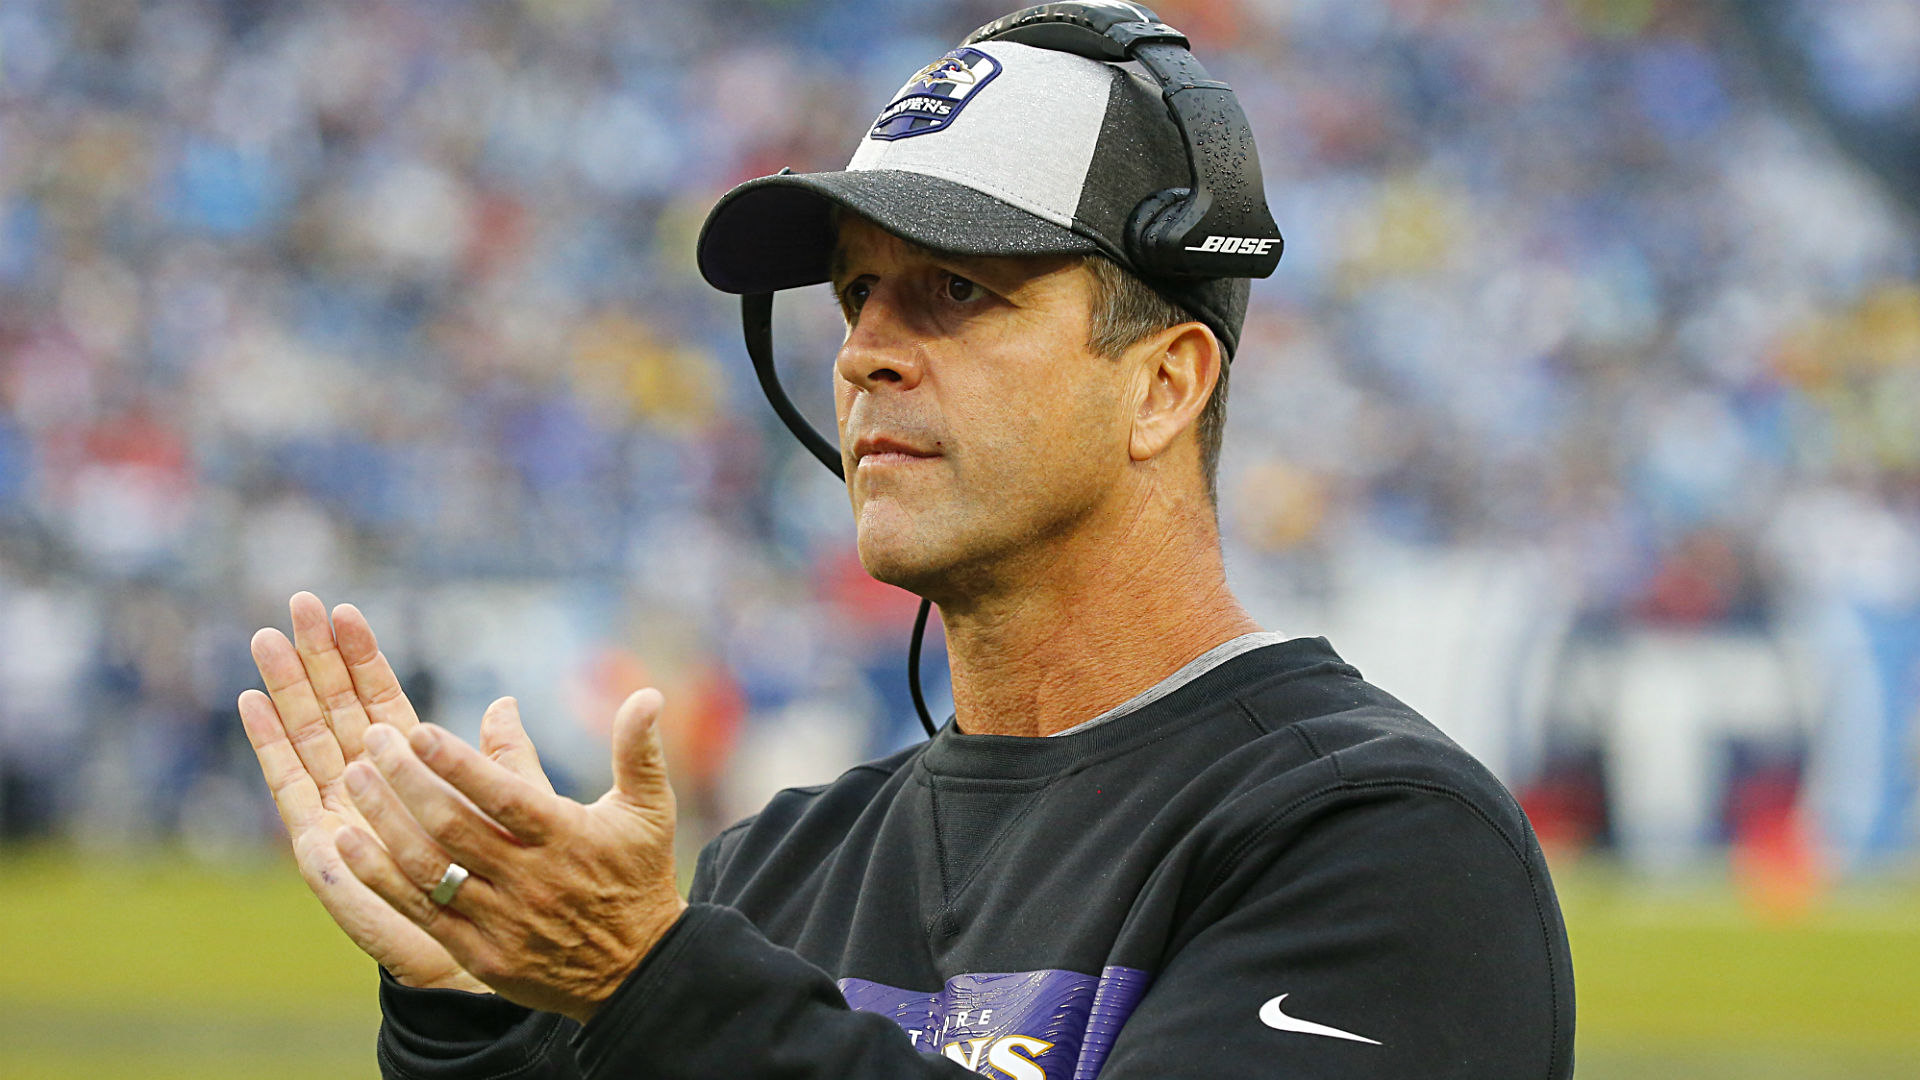 The Ravens proposed a bold and exciting overtime rule change called 'spot and choose'